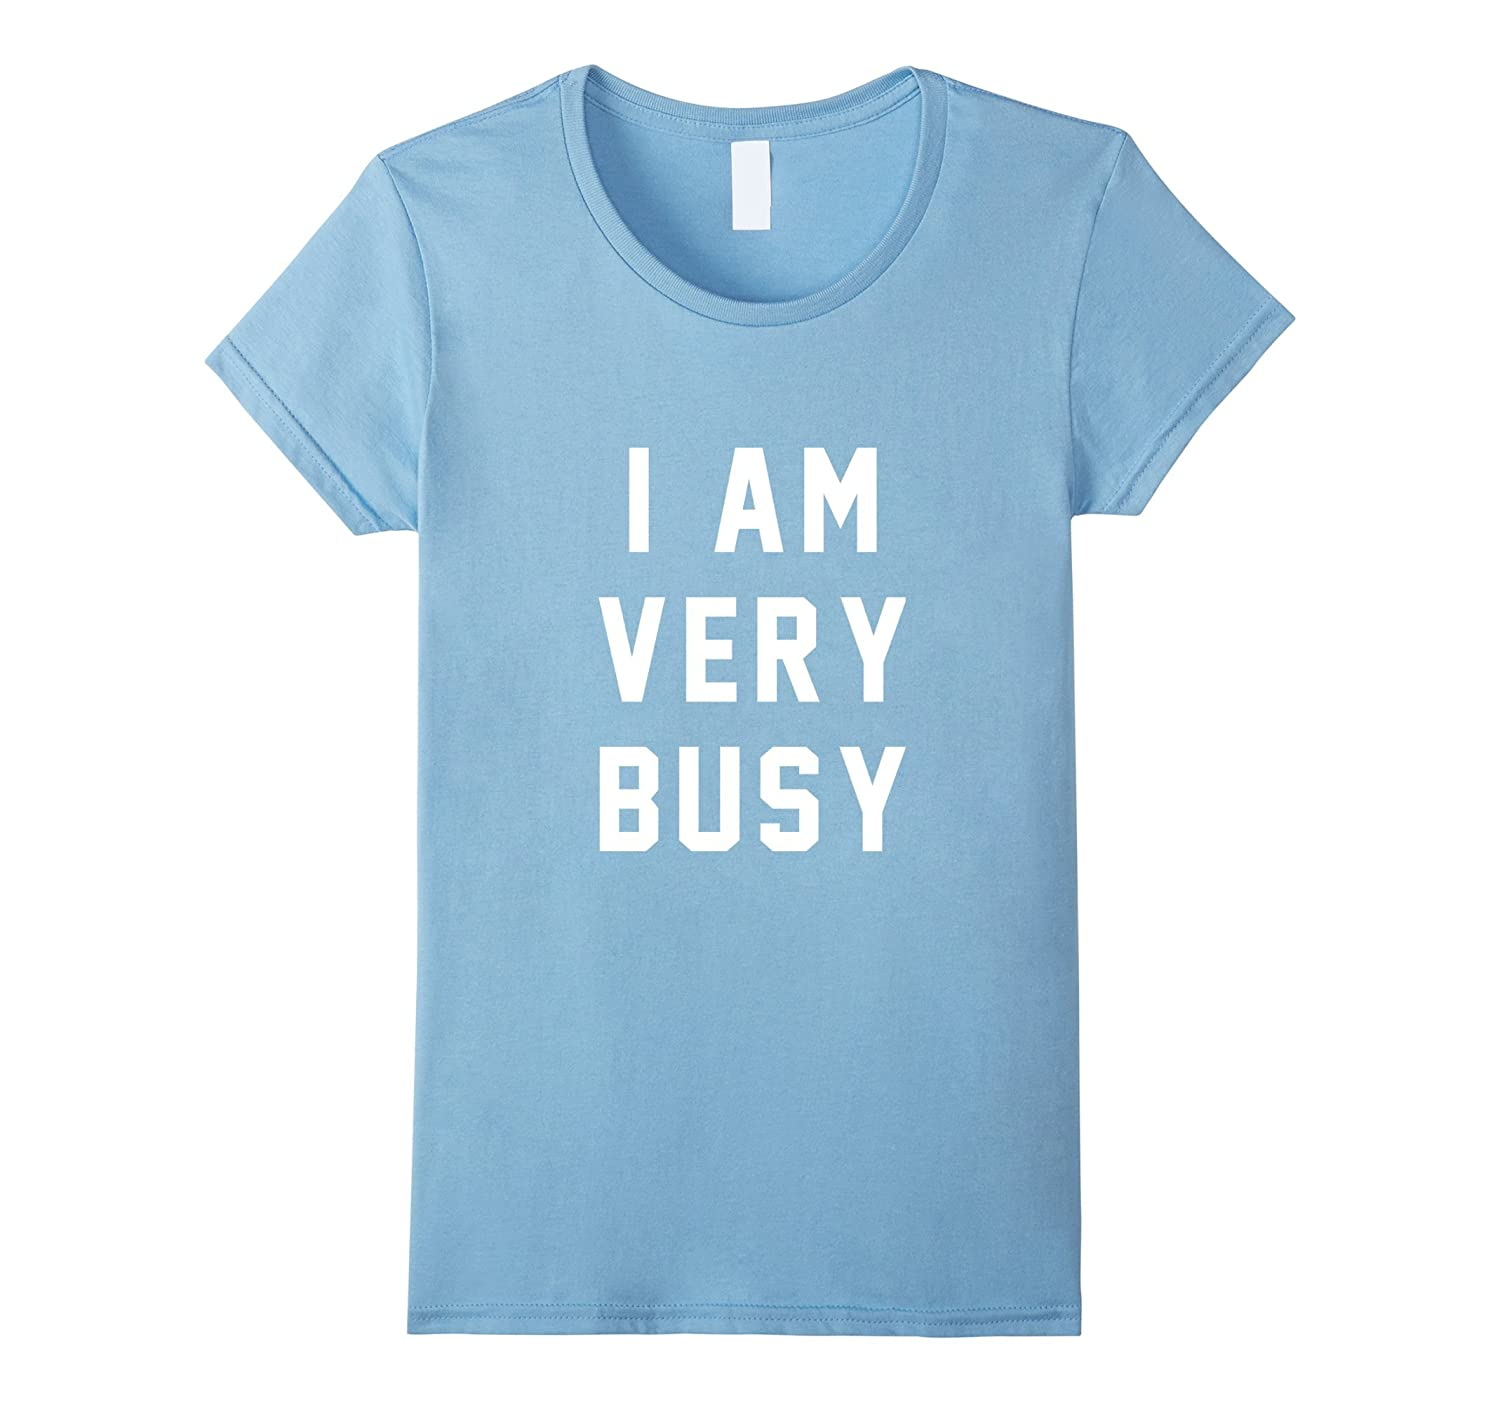 cac7ffea3de Amazon.com: I AM VERY BUSY - Serious Funny Quote T-Shirt: Clothing